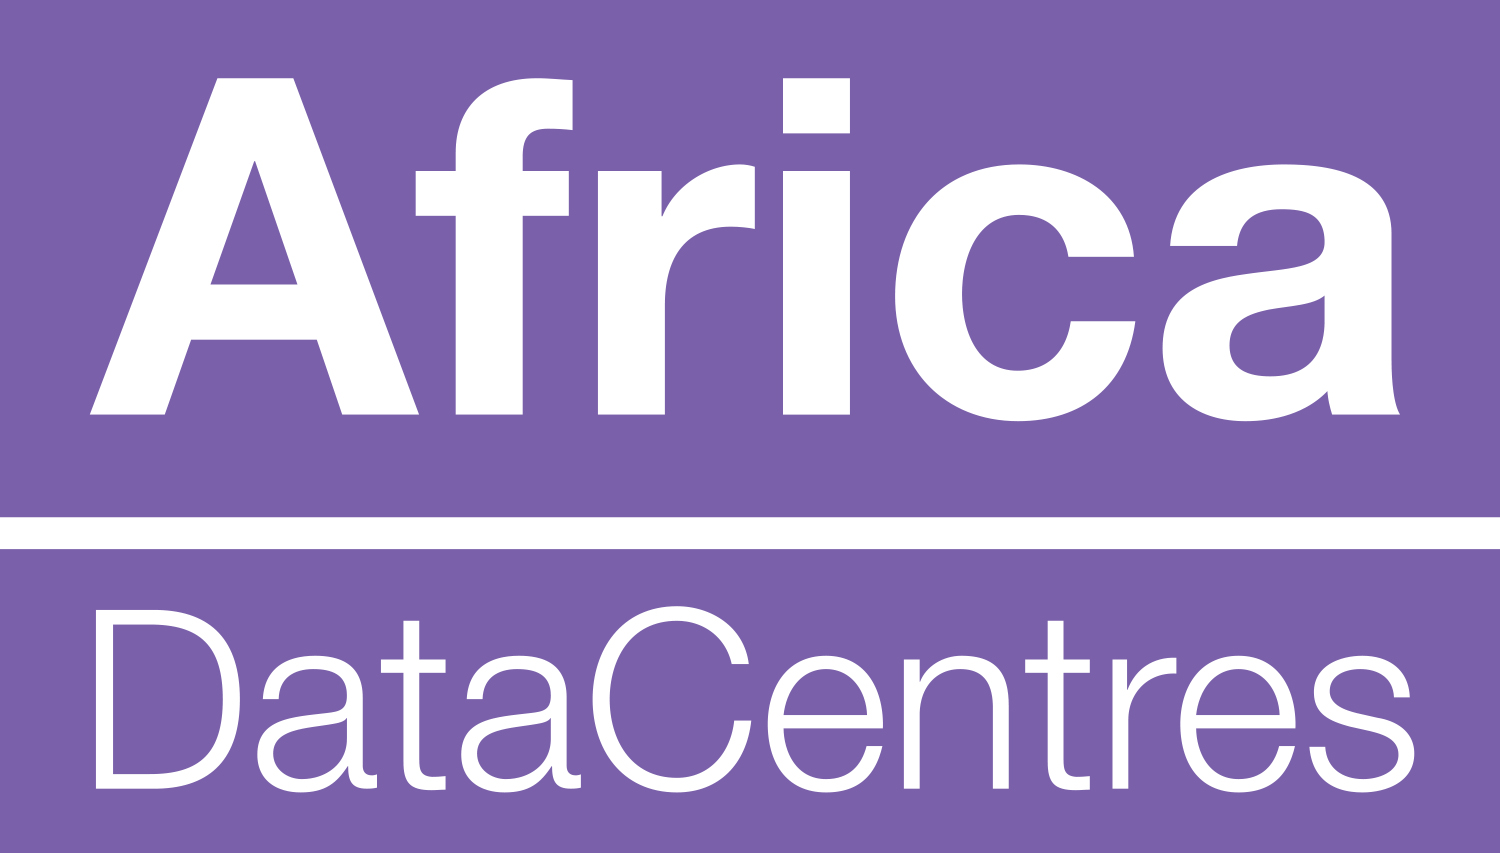 Africa Data Centers